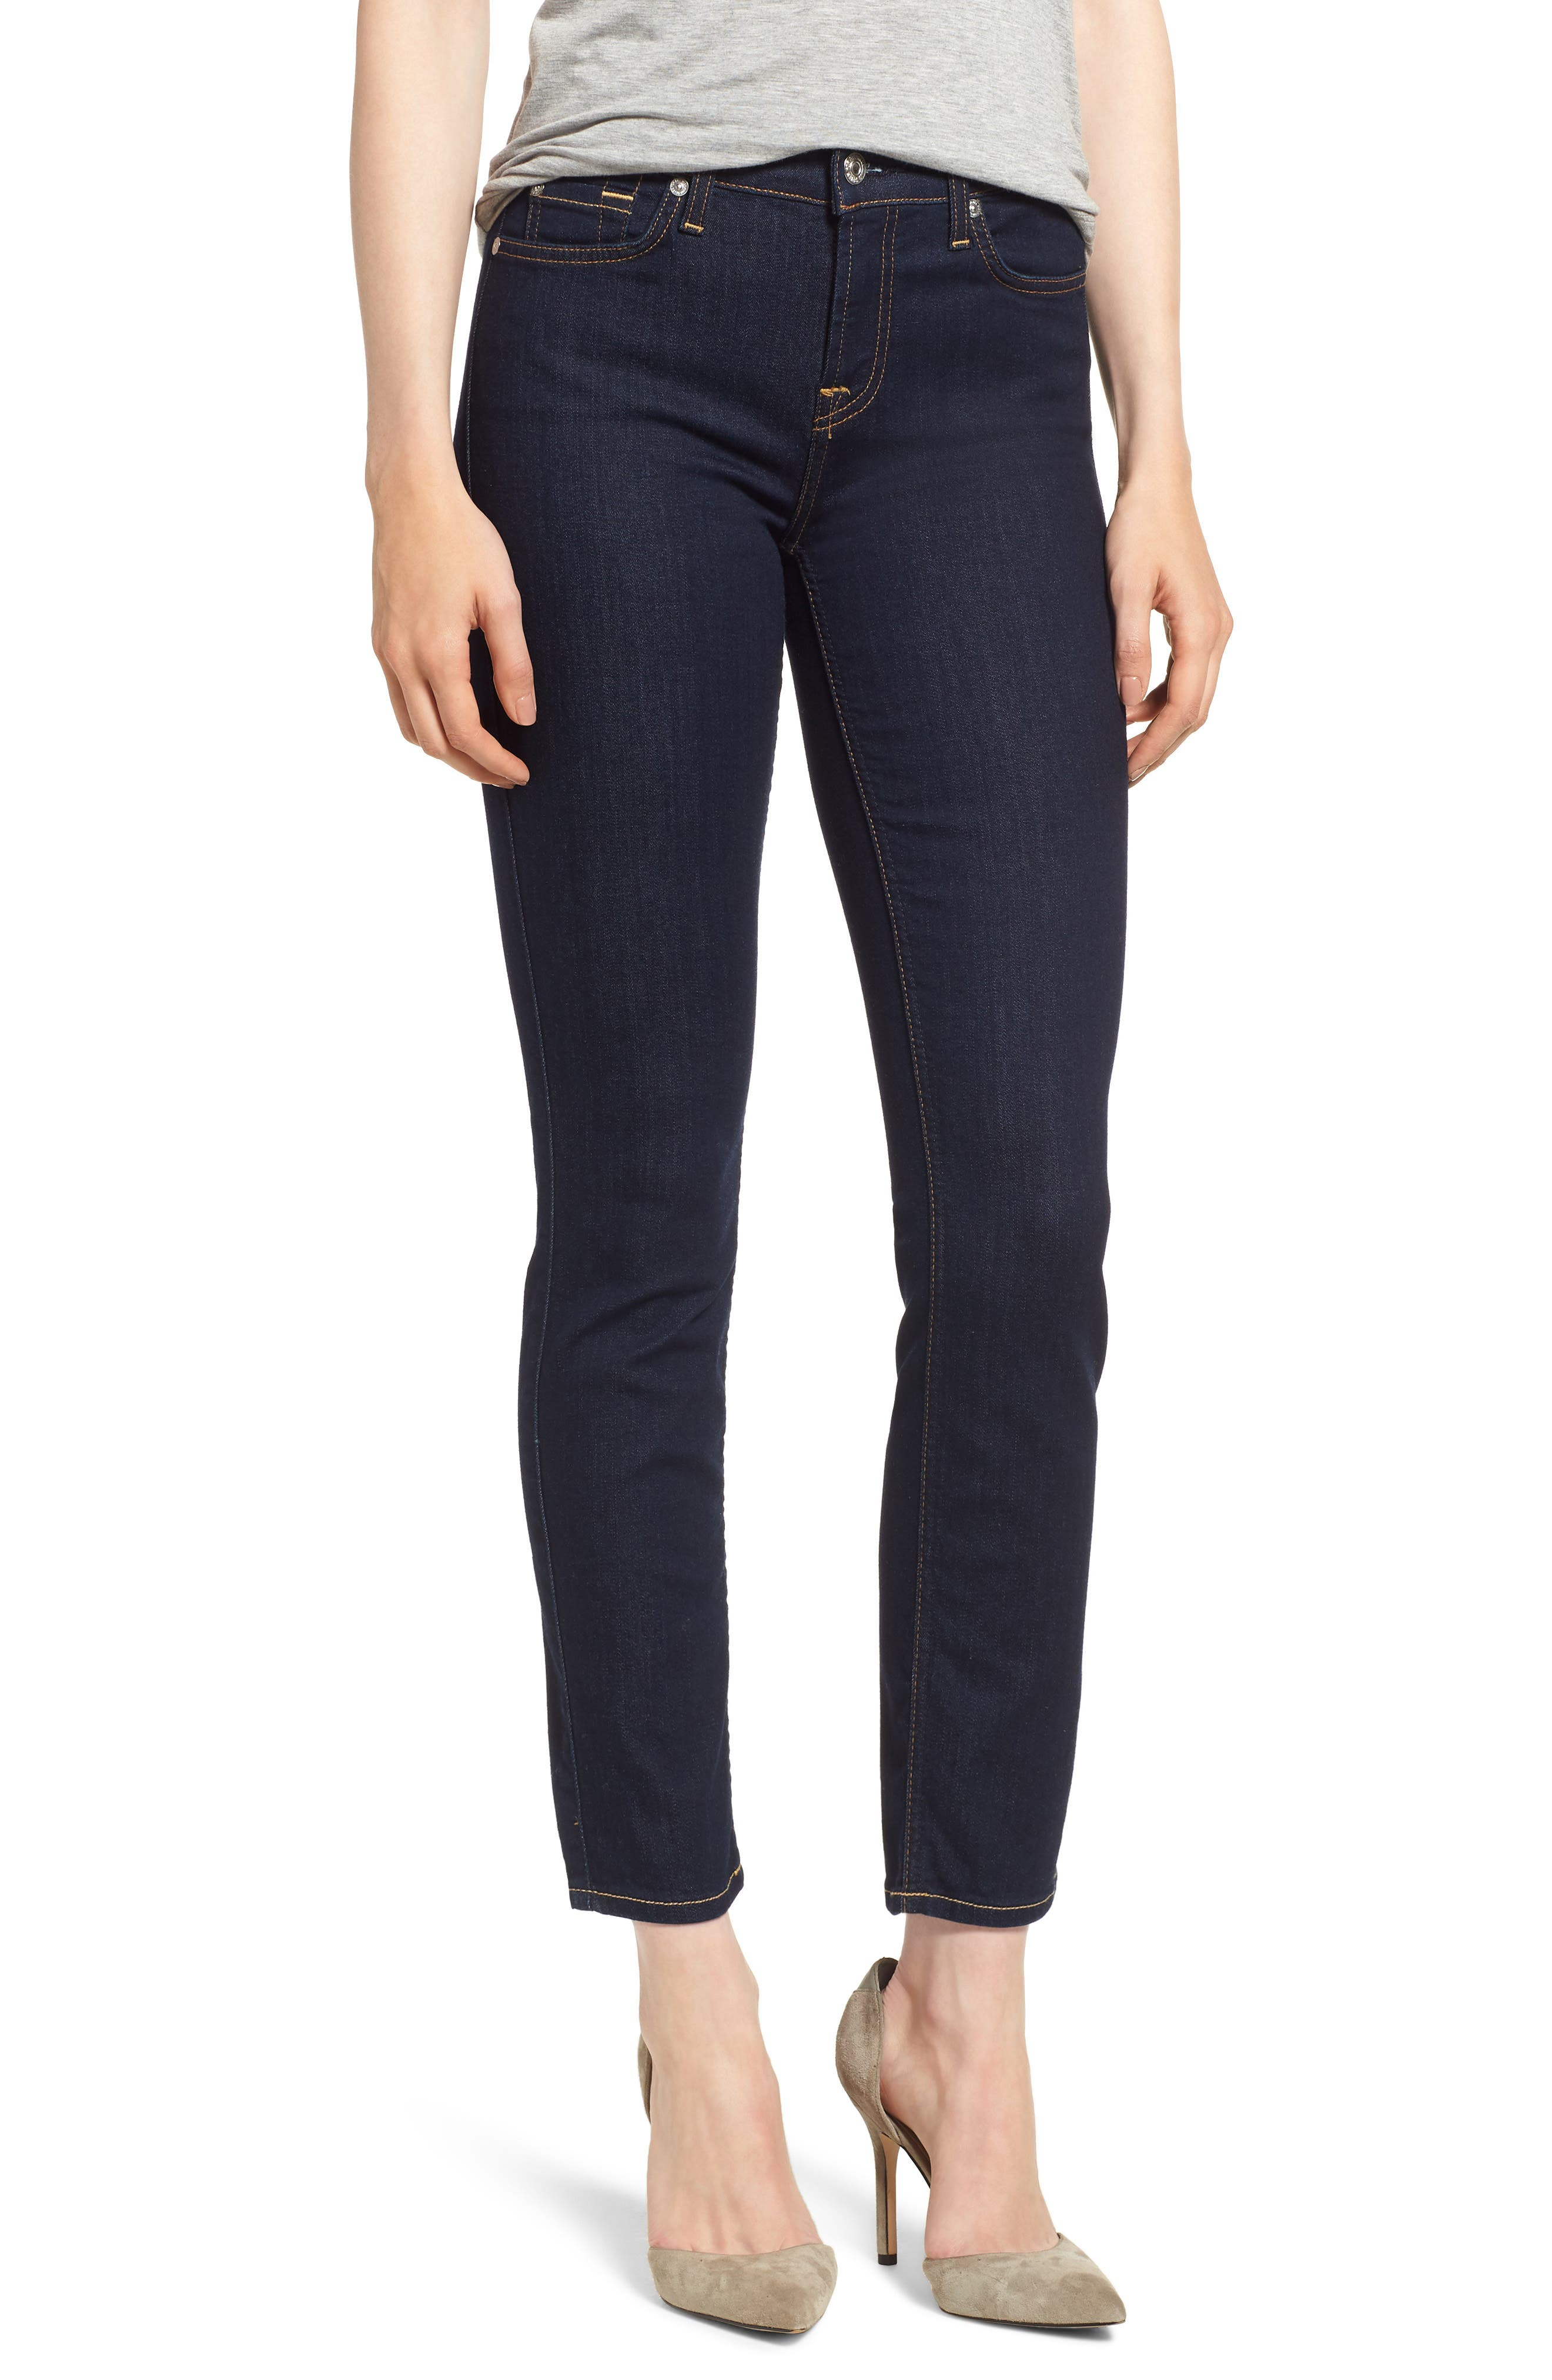 b(air) Roxanne Ankle Skinny Jeans,                         Main,                         color, B(Air) Authentic Rinse